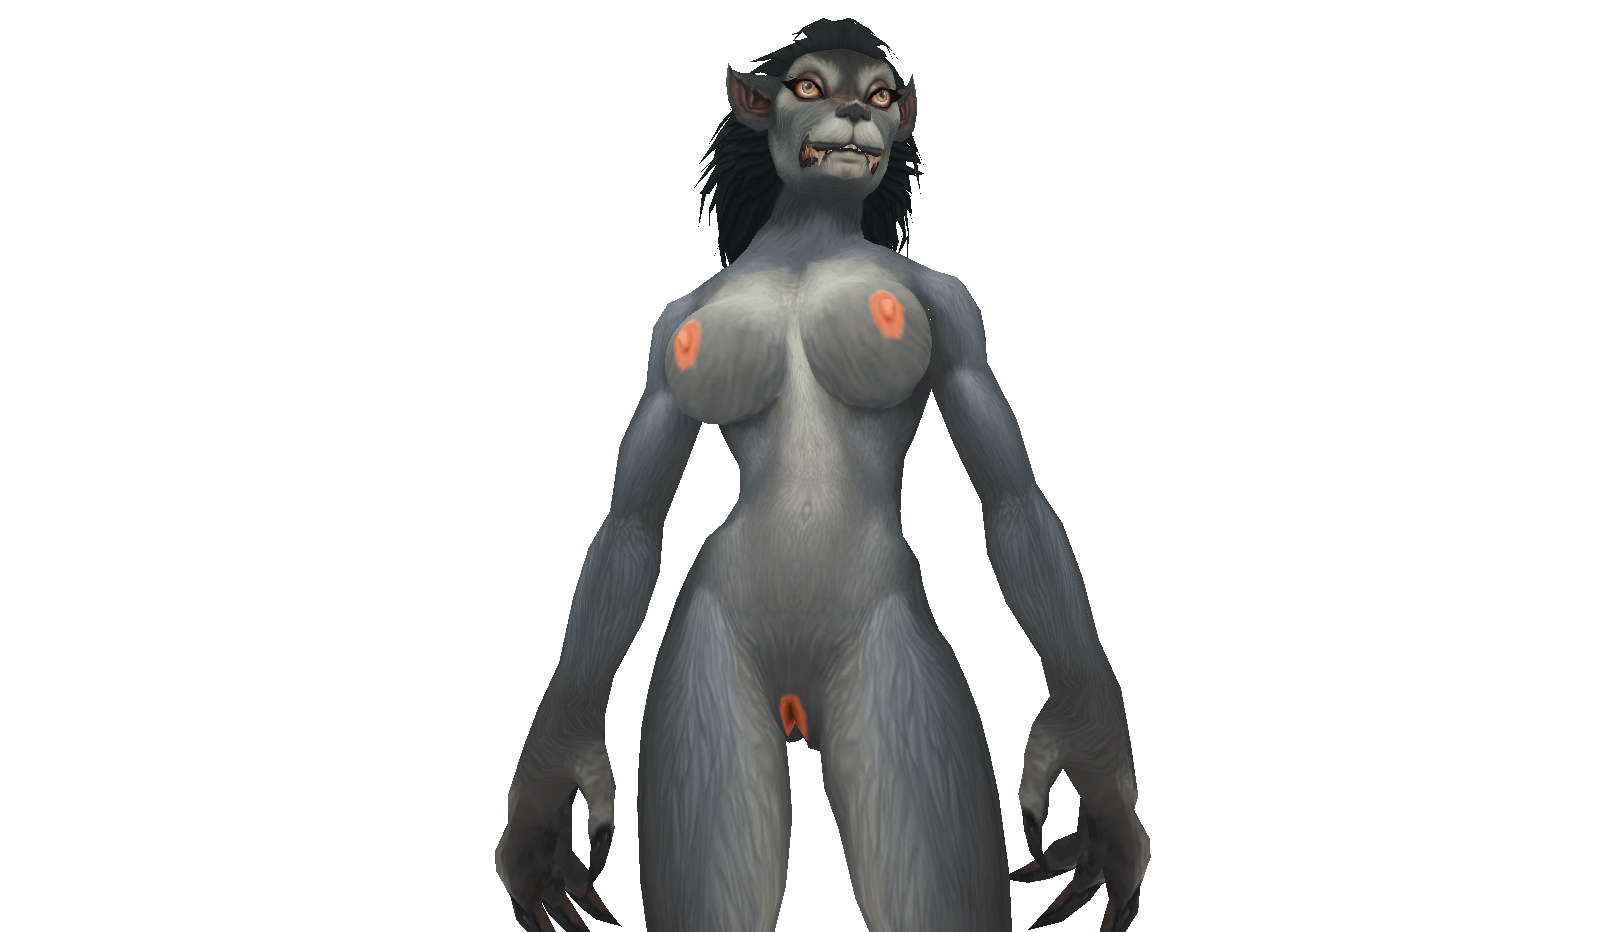 World of warcraft nude mod skins hentay realistic babe